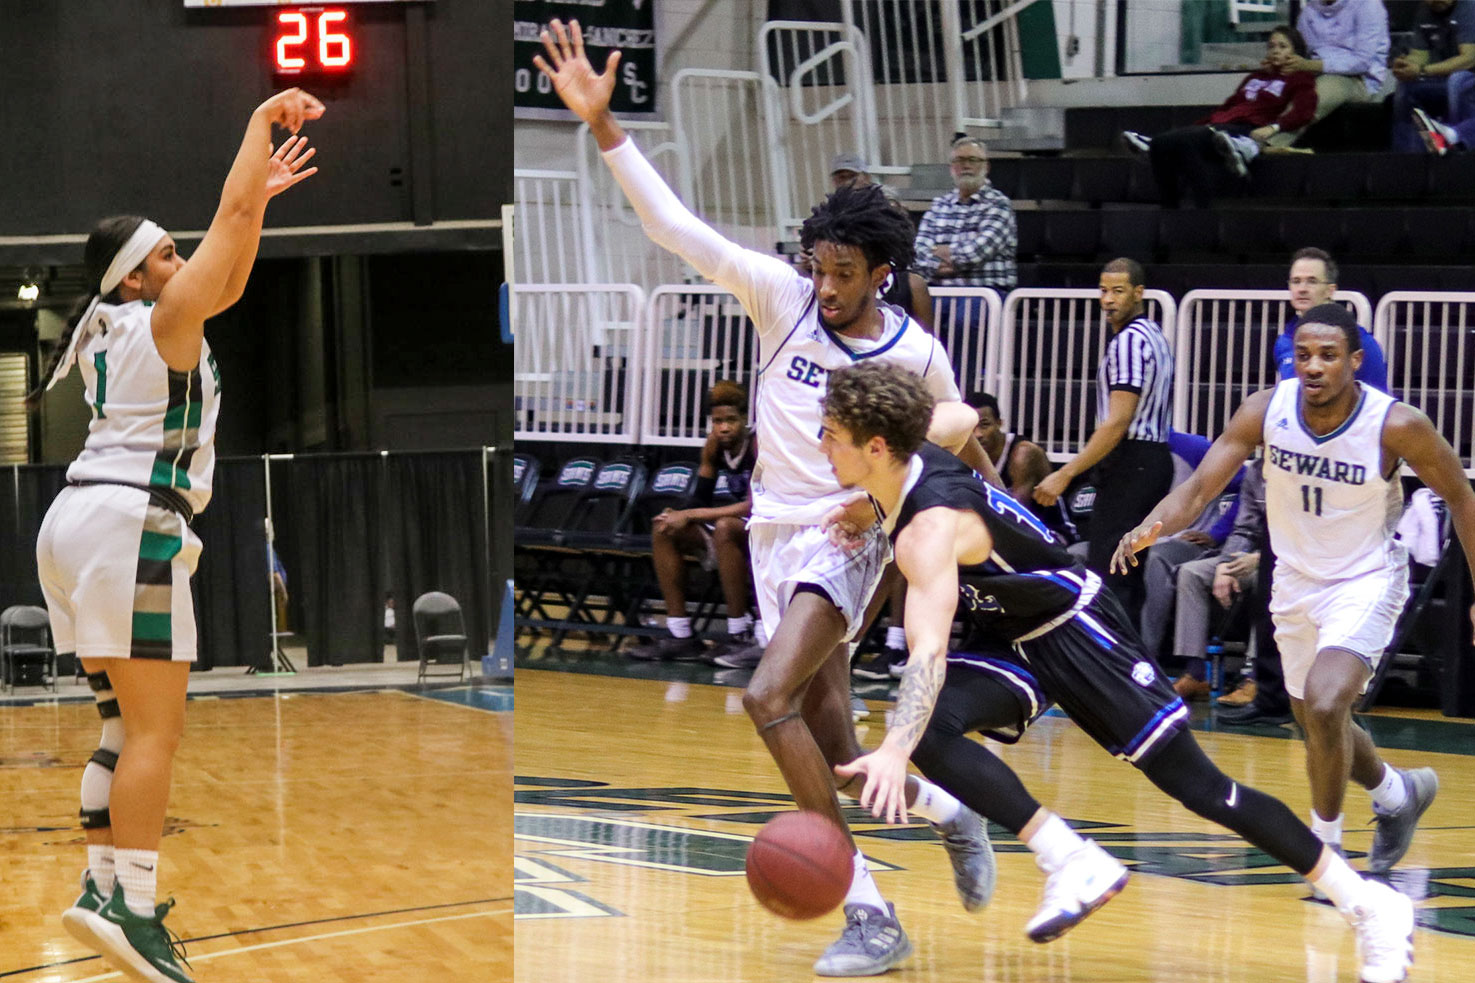 Both the men's and women's basketball teams advanced to the championship game for the Region VI tournament. The Lady Saints play tonight at 5 p.m. and the Saints play at 7 p.m.